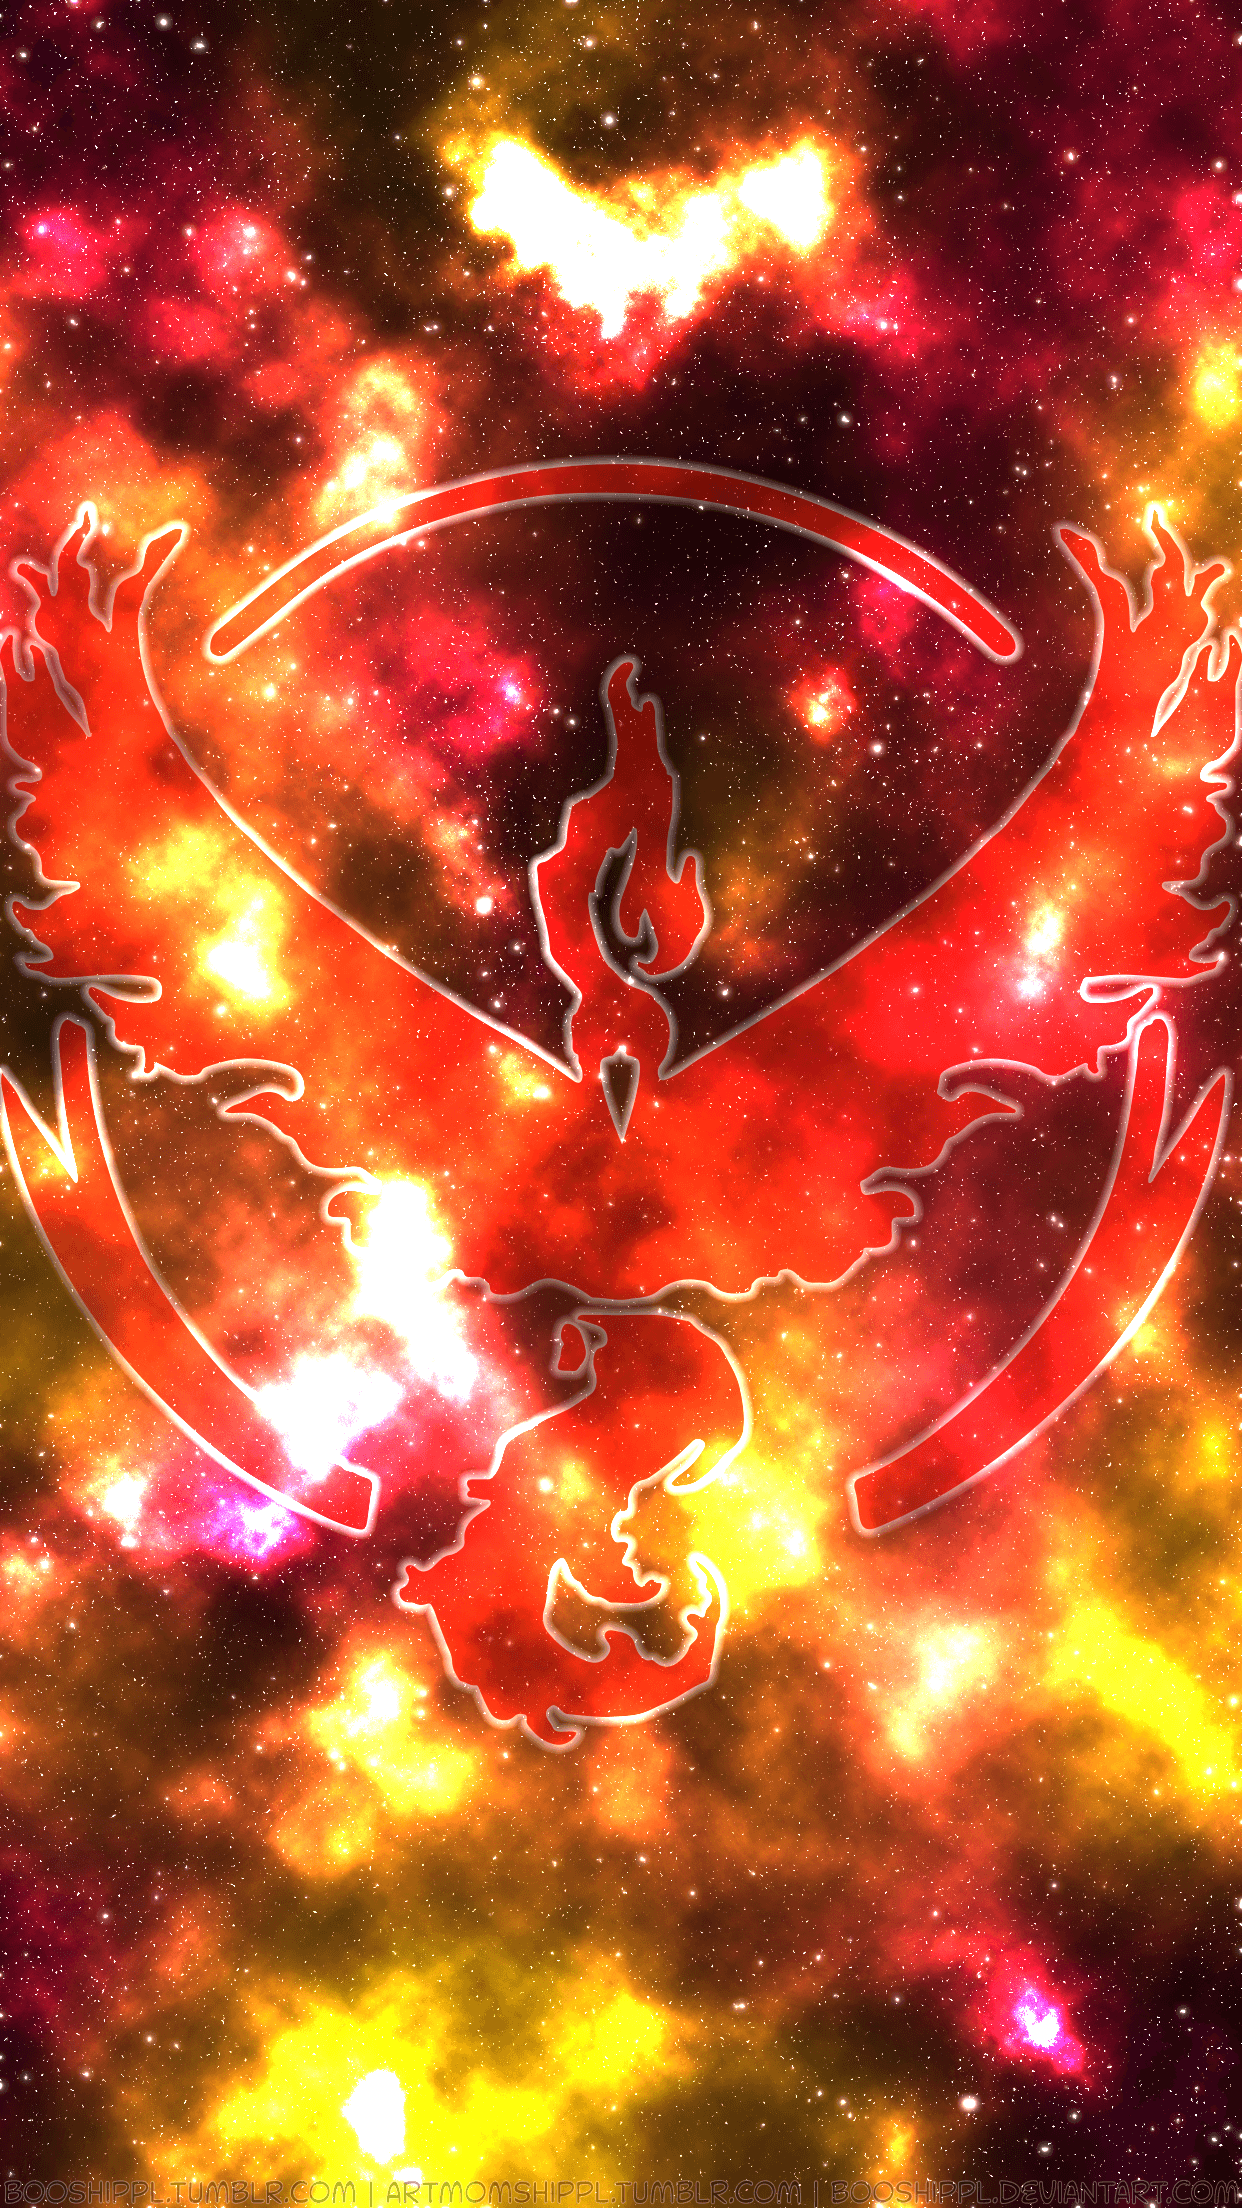 Pokemon Go - Team VALOR Wallpaper by Enttei on DeviantArt